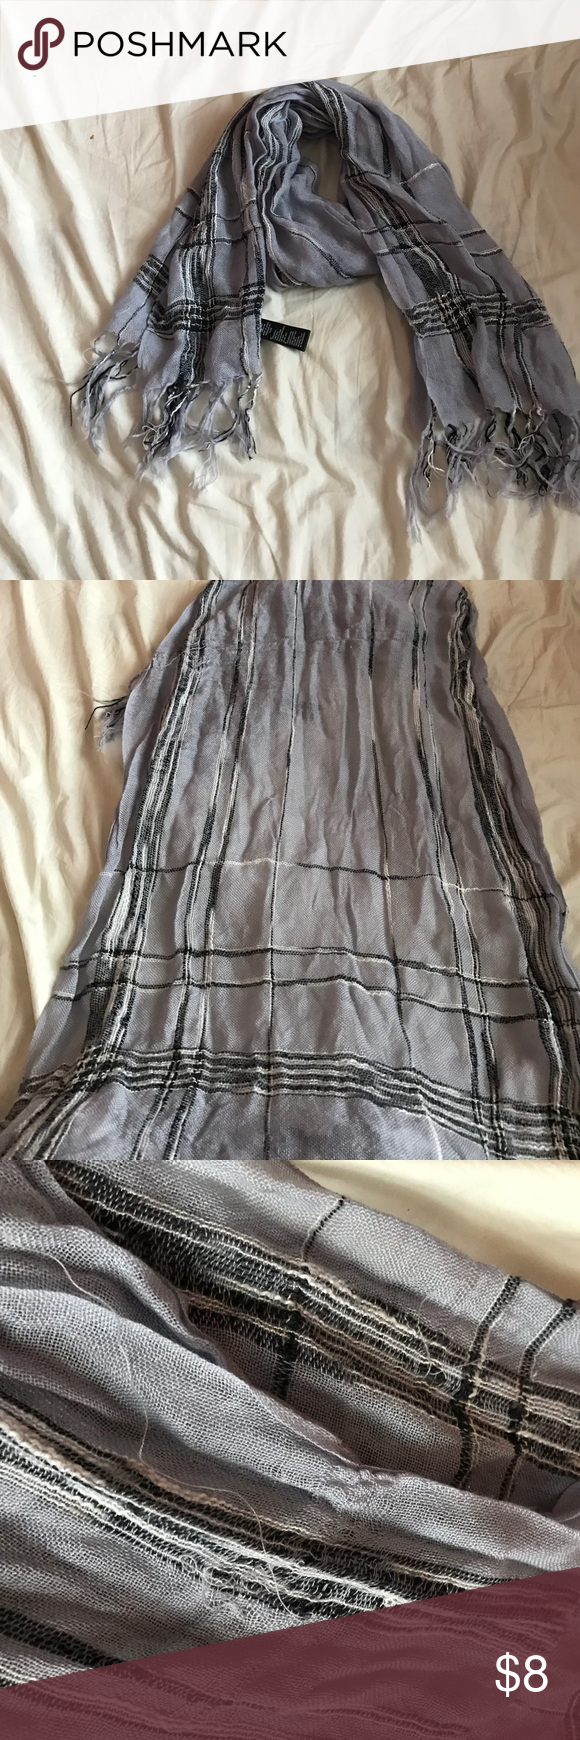 Forever 21 scarf In good condition with some flaws shown that are not noticeable when worn Forever 21 Accessories Scarves & Wraps